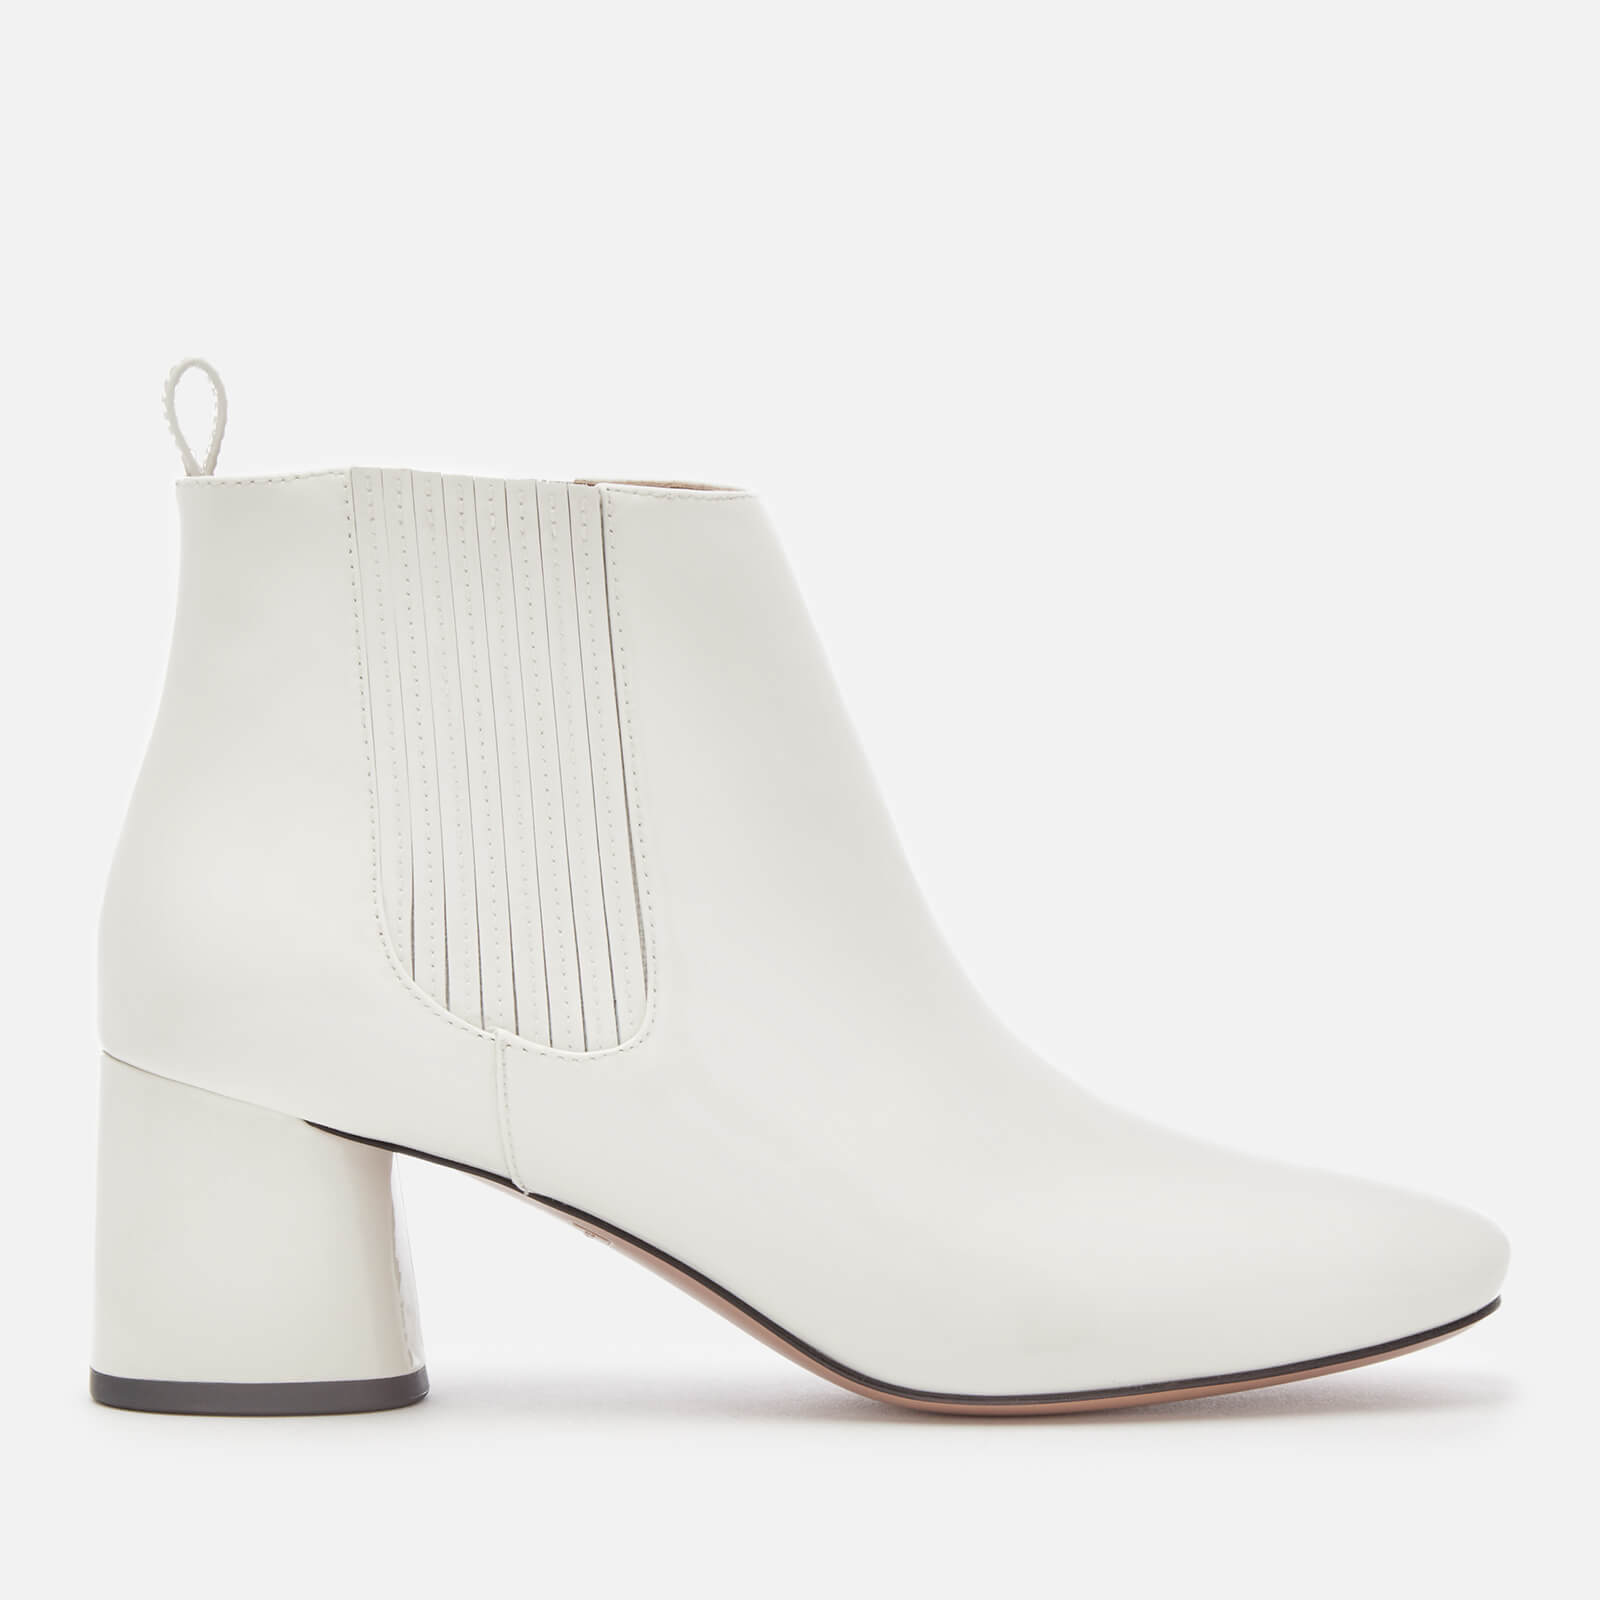 c15d54aac1ad Marc Jacobs Women s Rocket Chelsea Boots - White - Free UK Delivery over £50